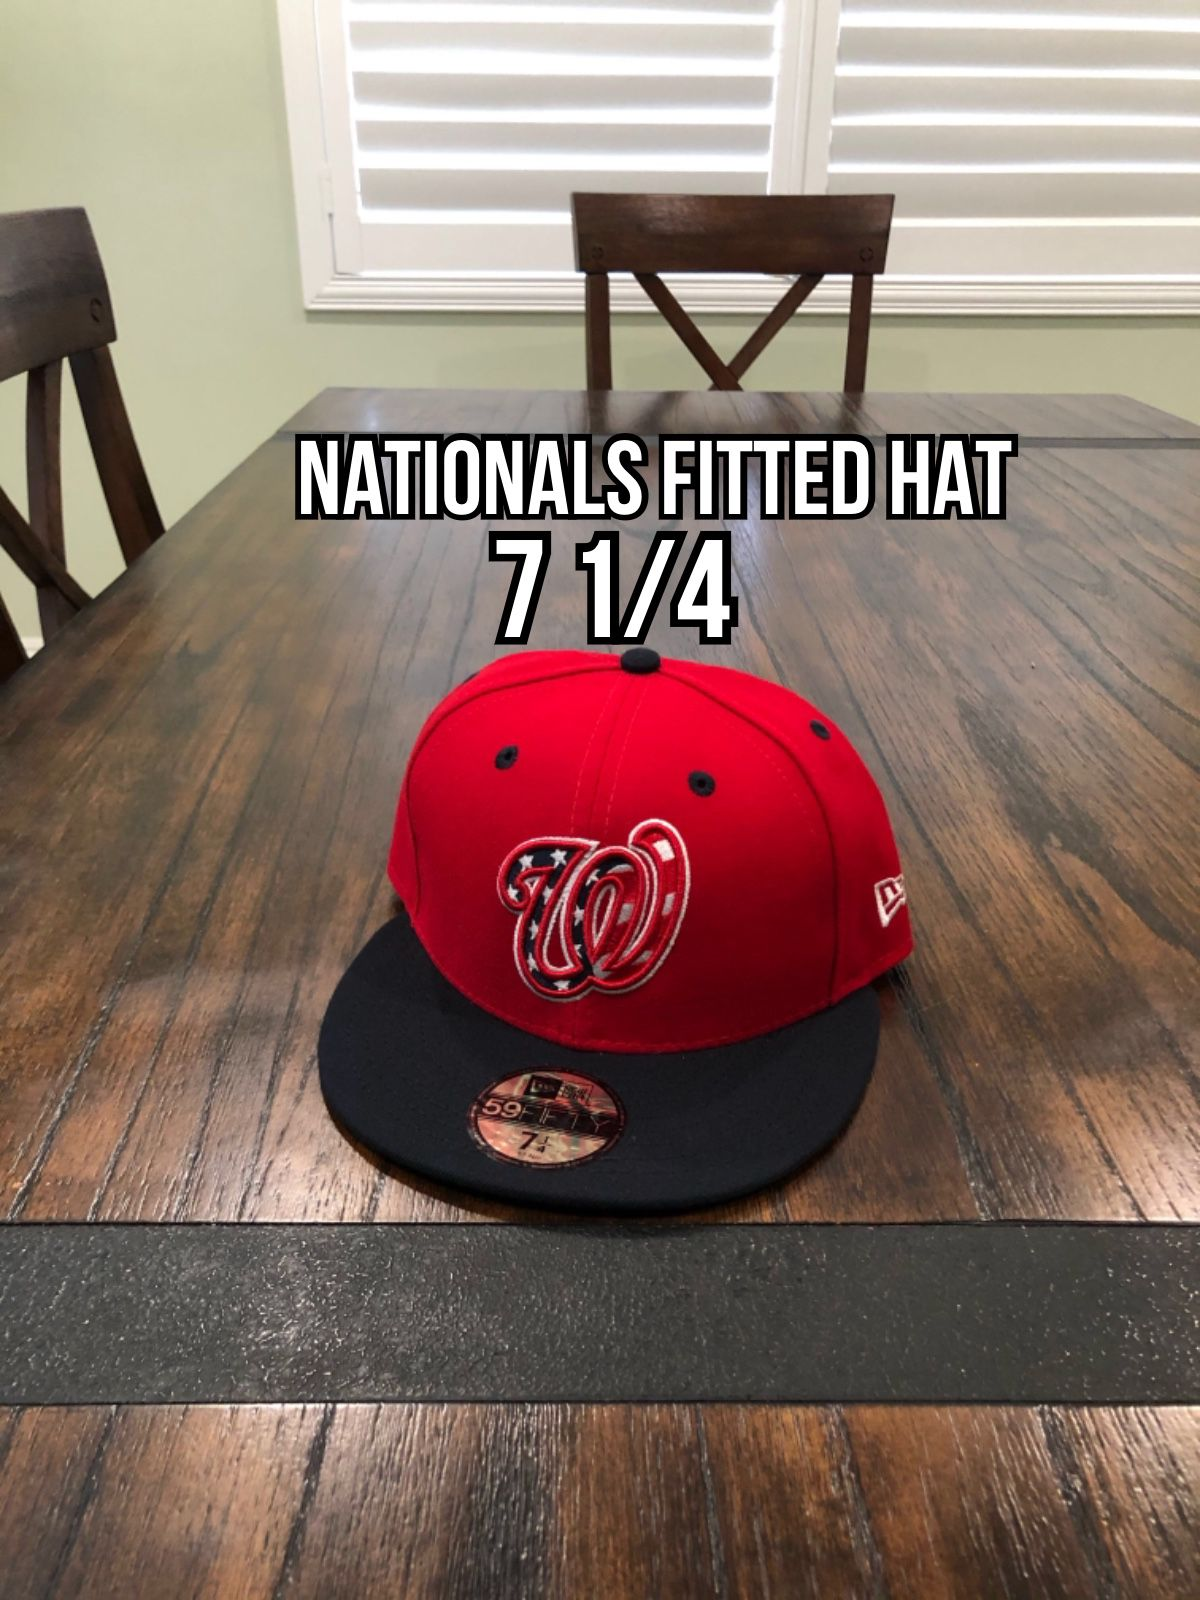 MLB New Era Washington Nationals Red Blue Brim 59fifty Fitted Hat Size 7 1/4